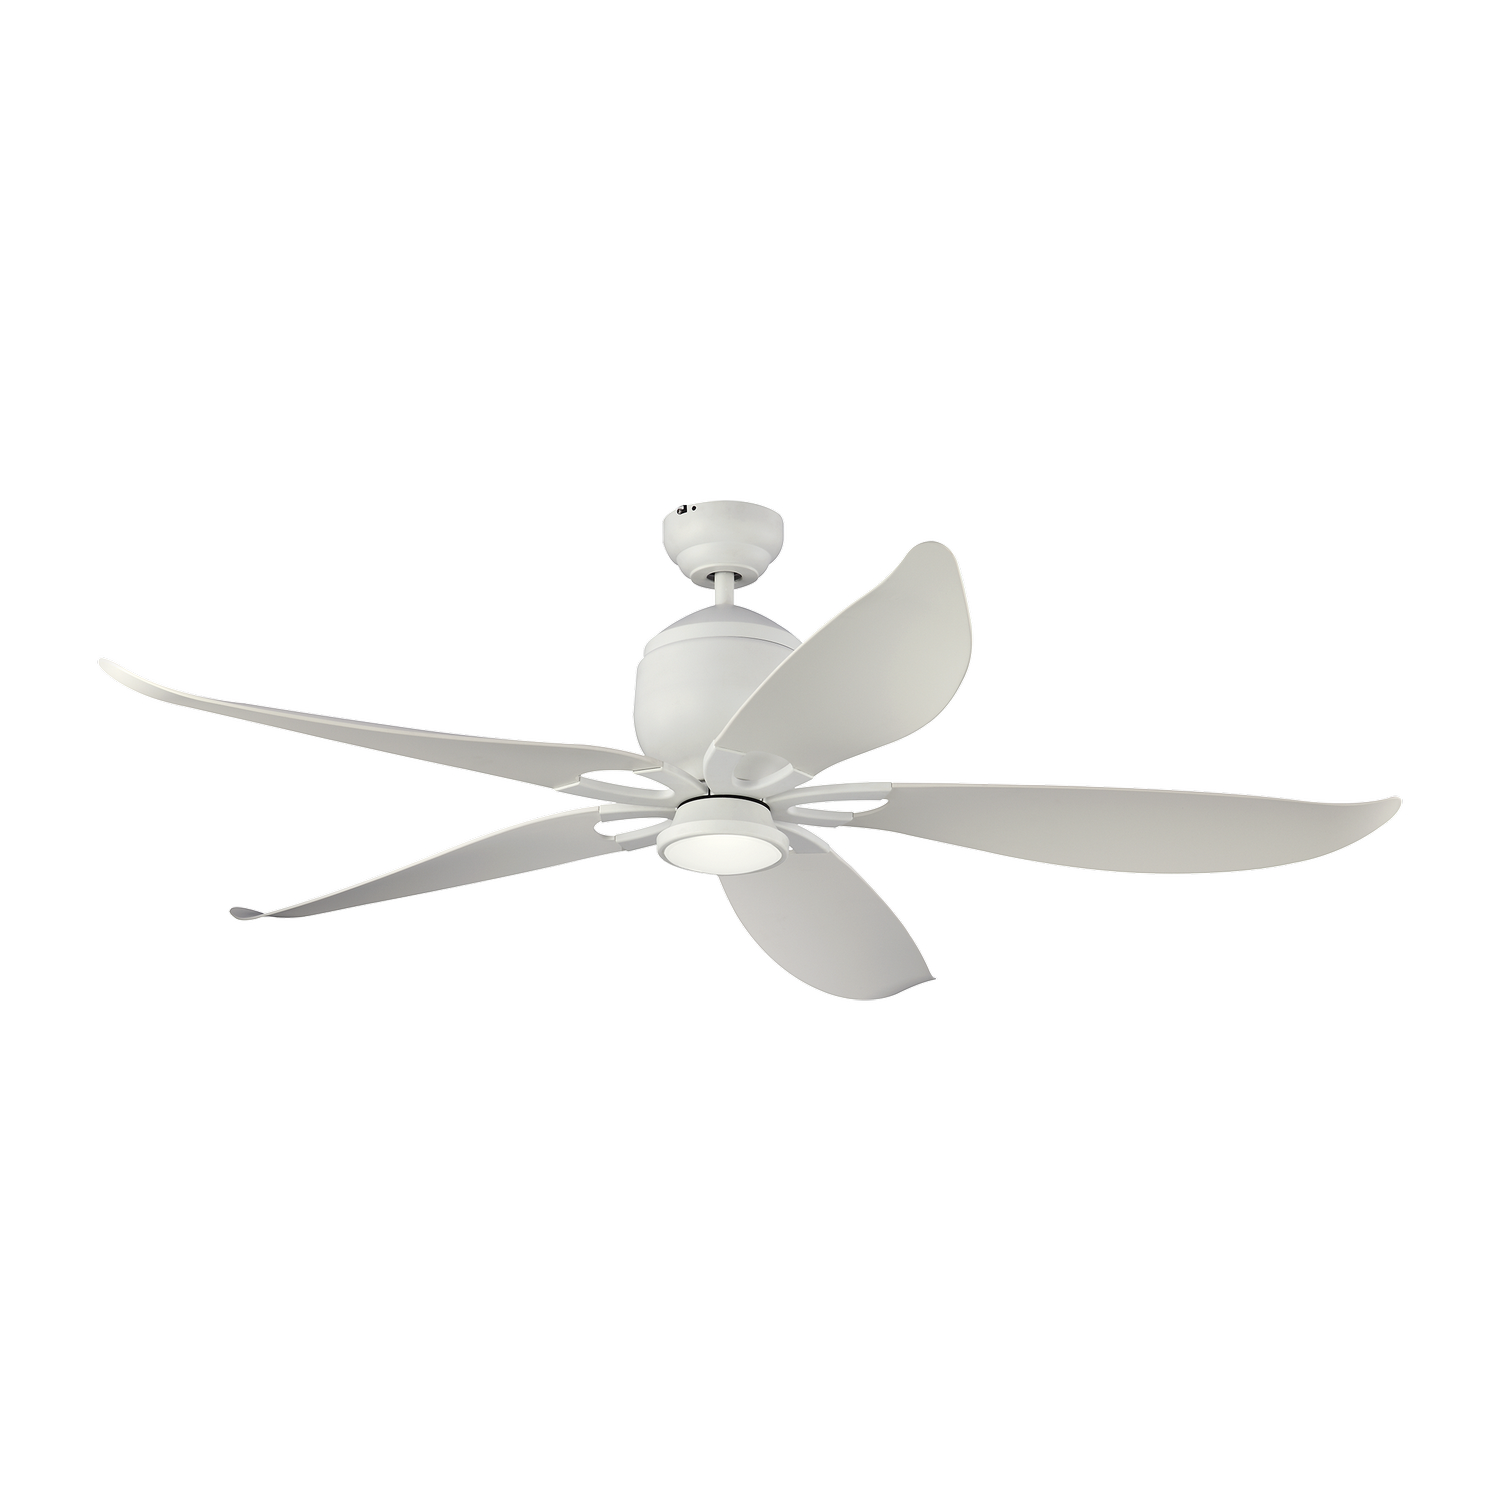 56 inchCeiling Fan from the Lily collection by Monte Carlo 5LLR56RZWD V1